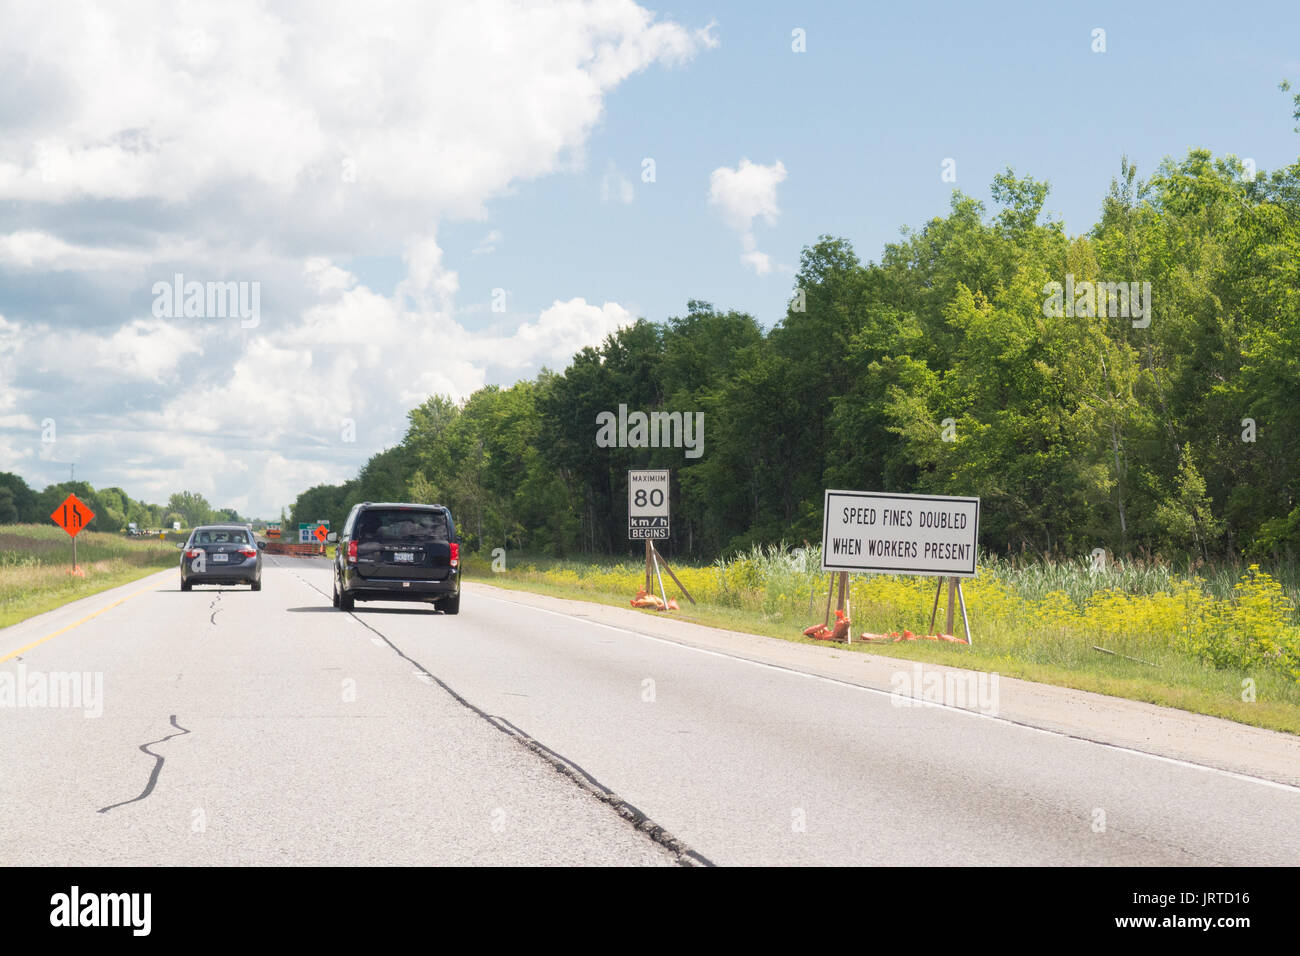 Speed Fines Doubled when workers present sign, Ontario, Canada - Stock Image